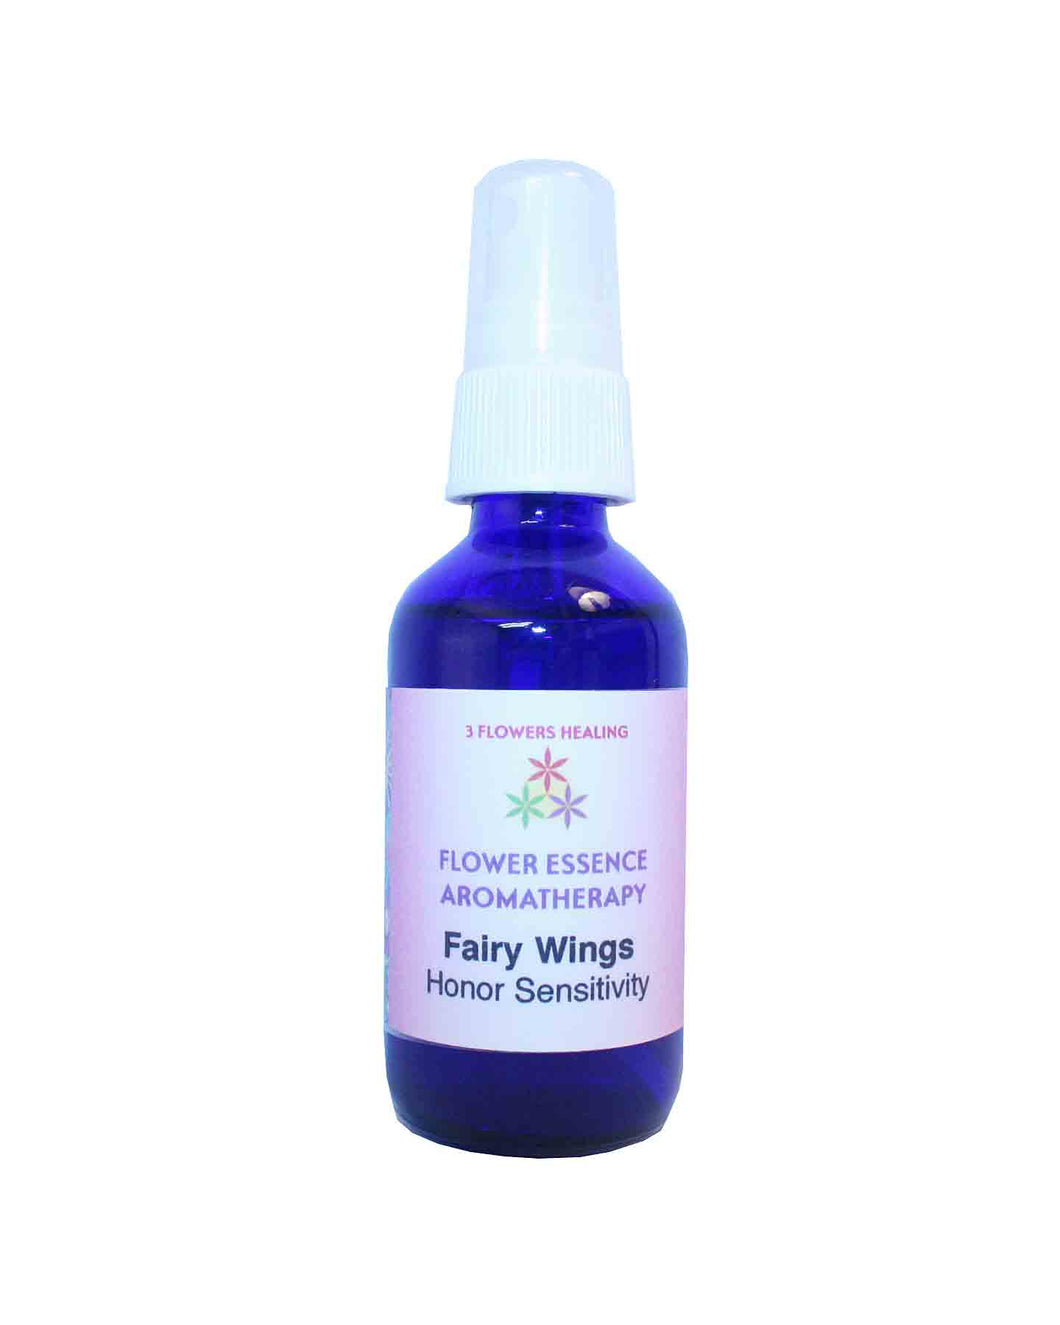 Fairy Wings Spray Mist